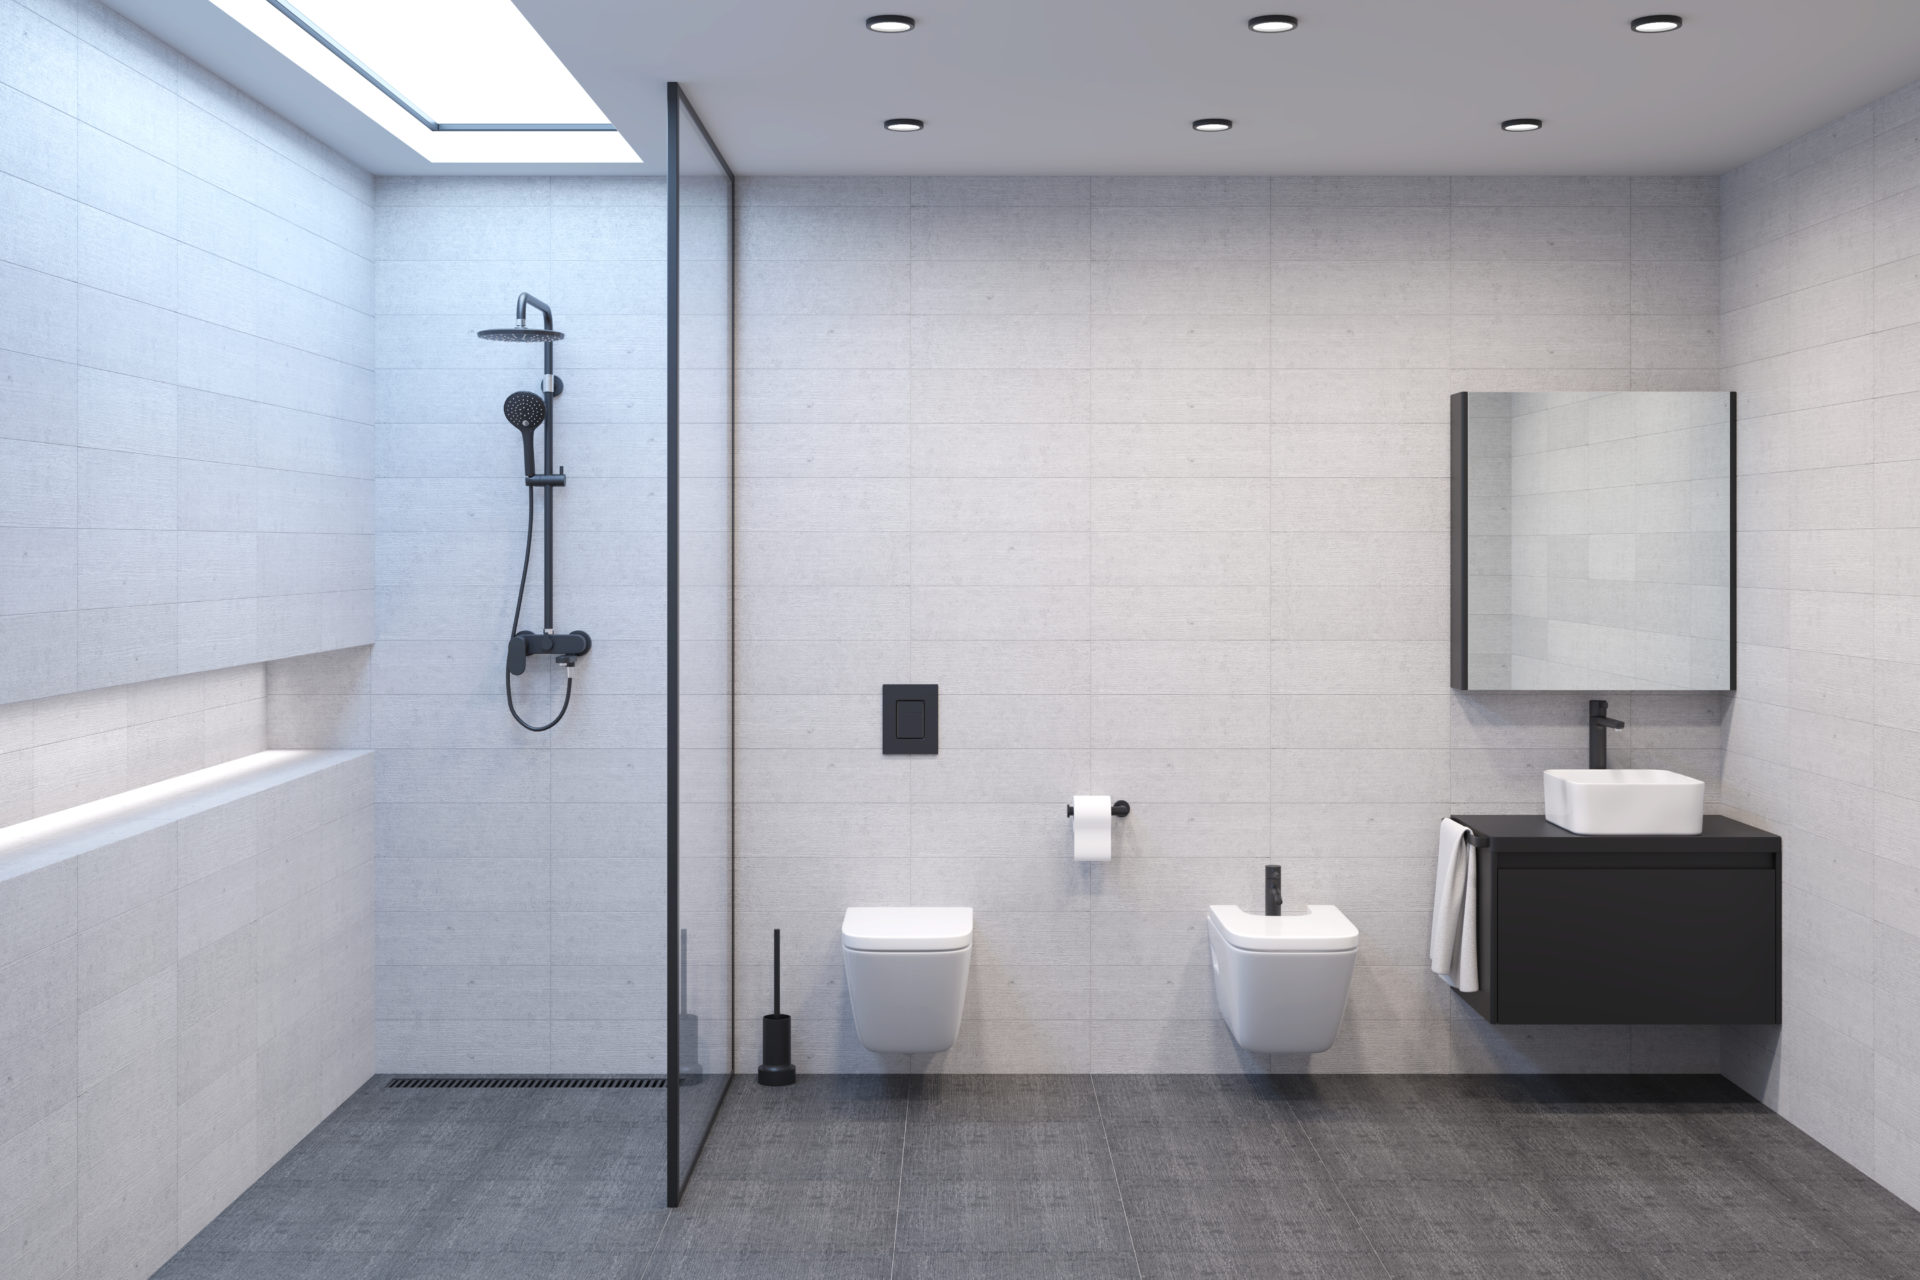 Minimalist modern bright shower room with a daylight lamp in the ceiling to create the illusion of a window. Dark hardware to create contrast with light walls. Shower, toilet, bidet and washbasin with mirror. Front view.